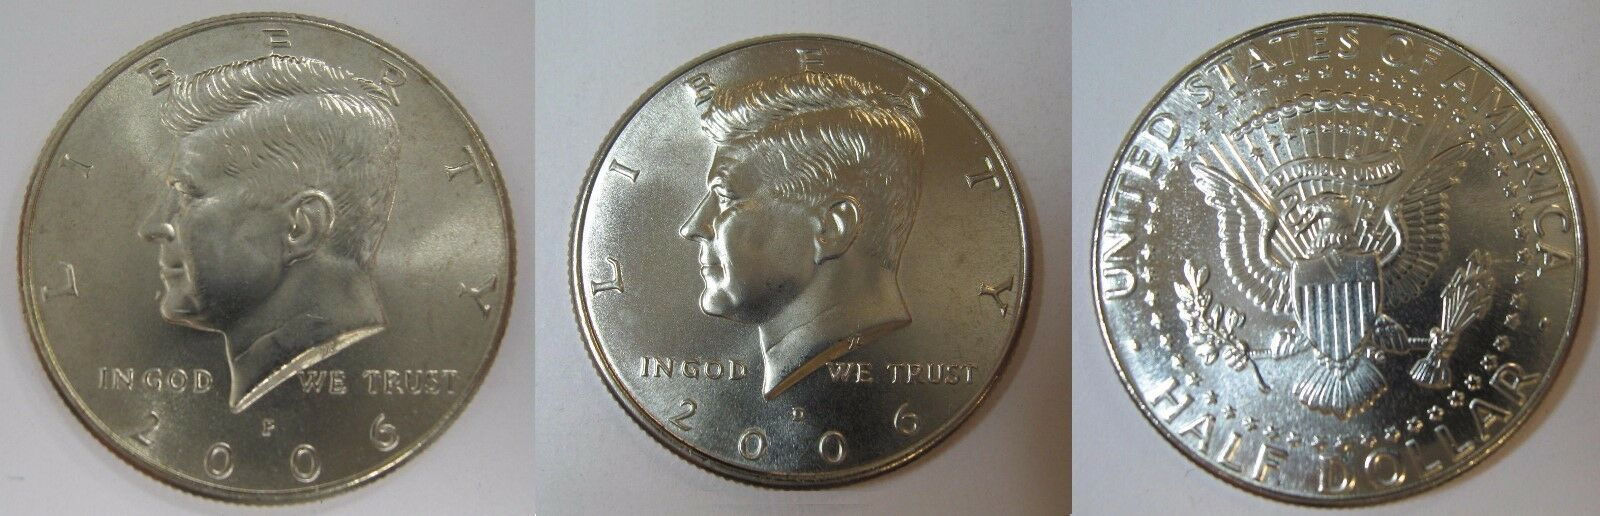 2006 P and D  BU Kennedy Half Dollar from US Mint Roll CP2434